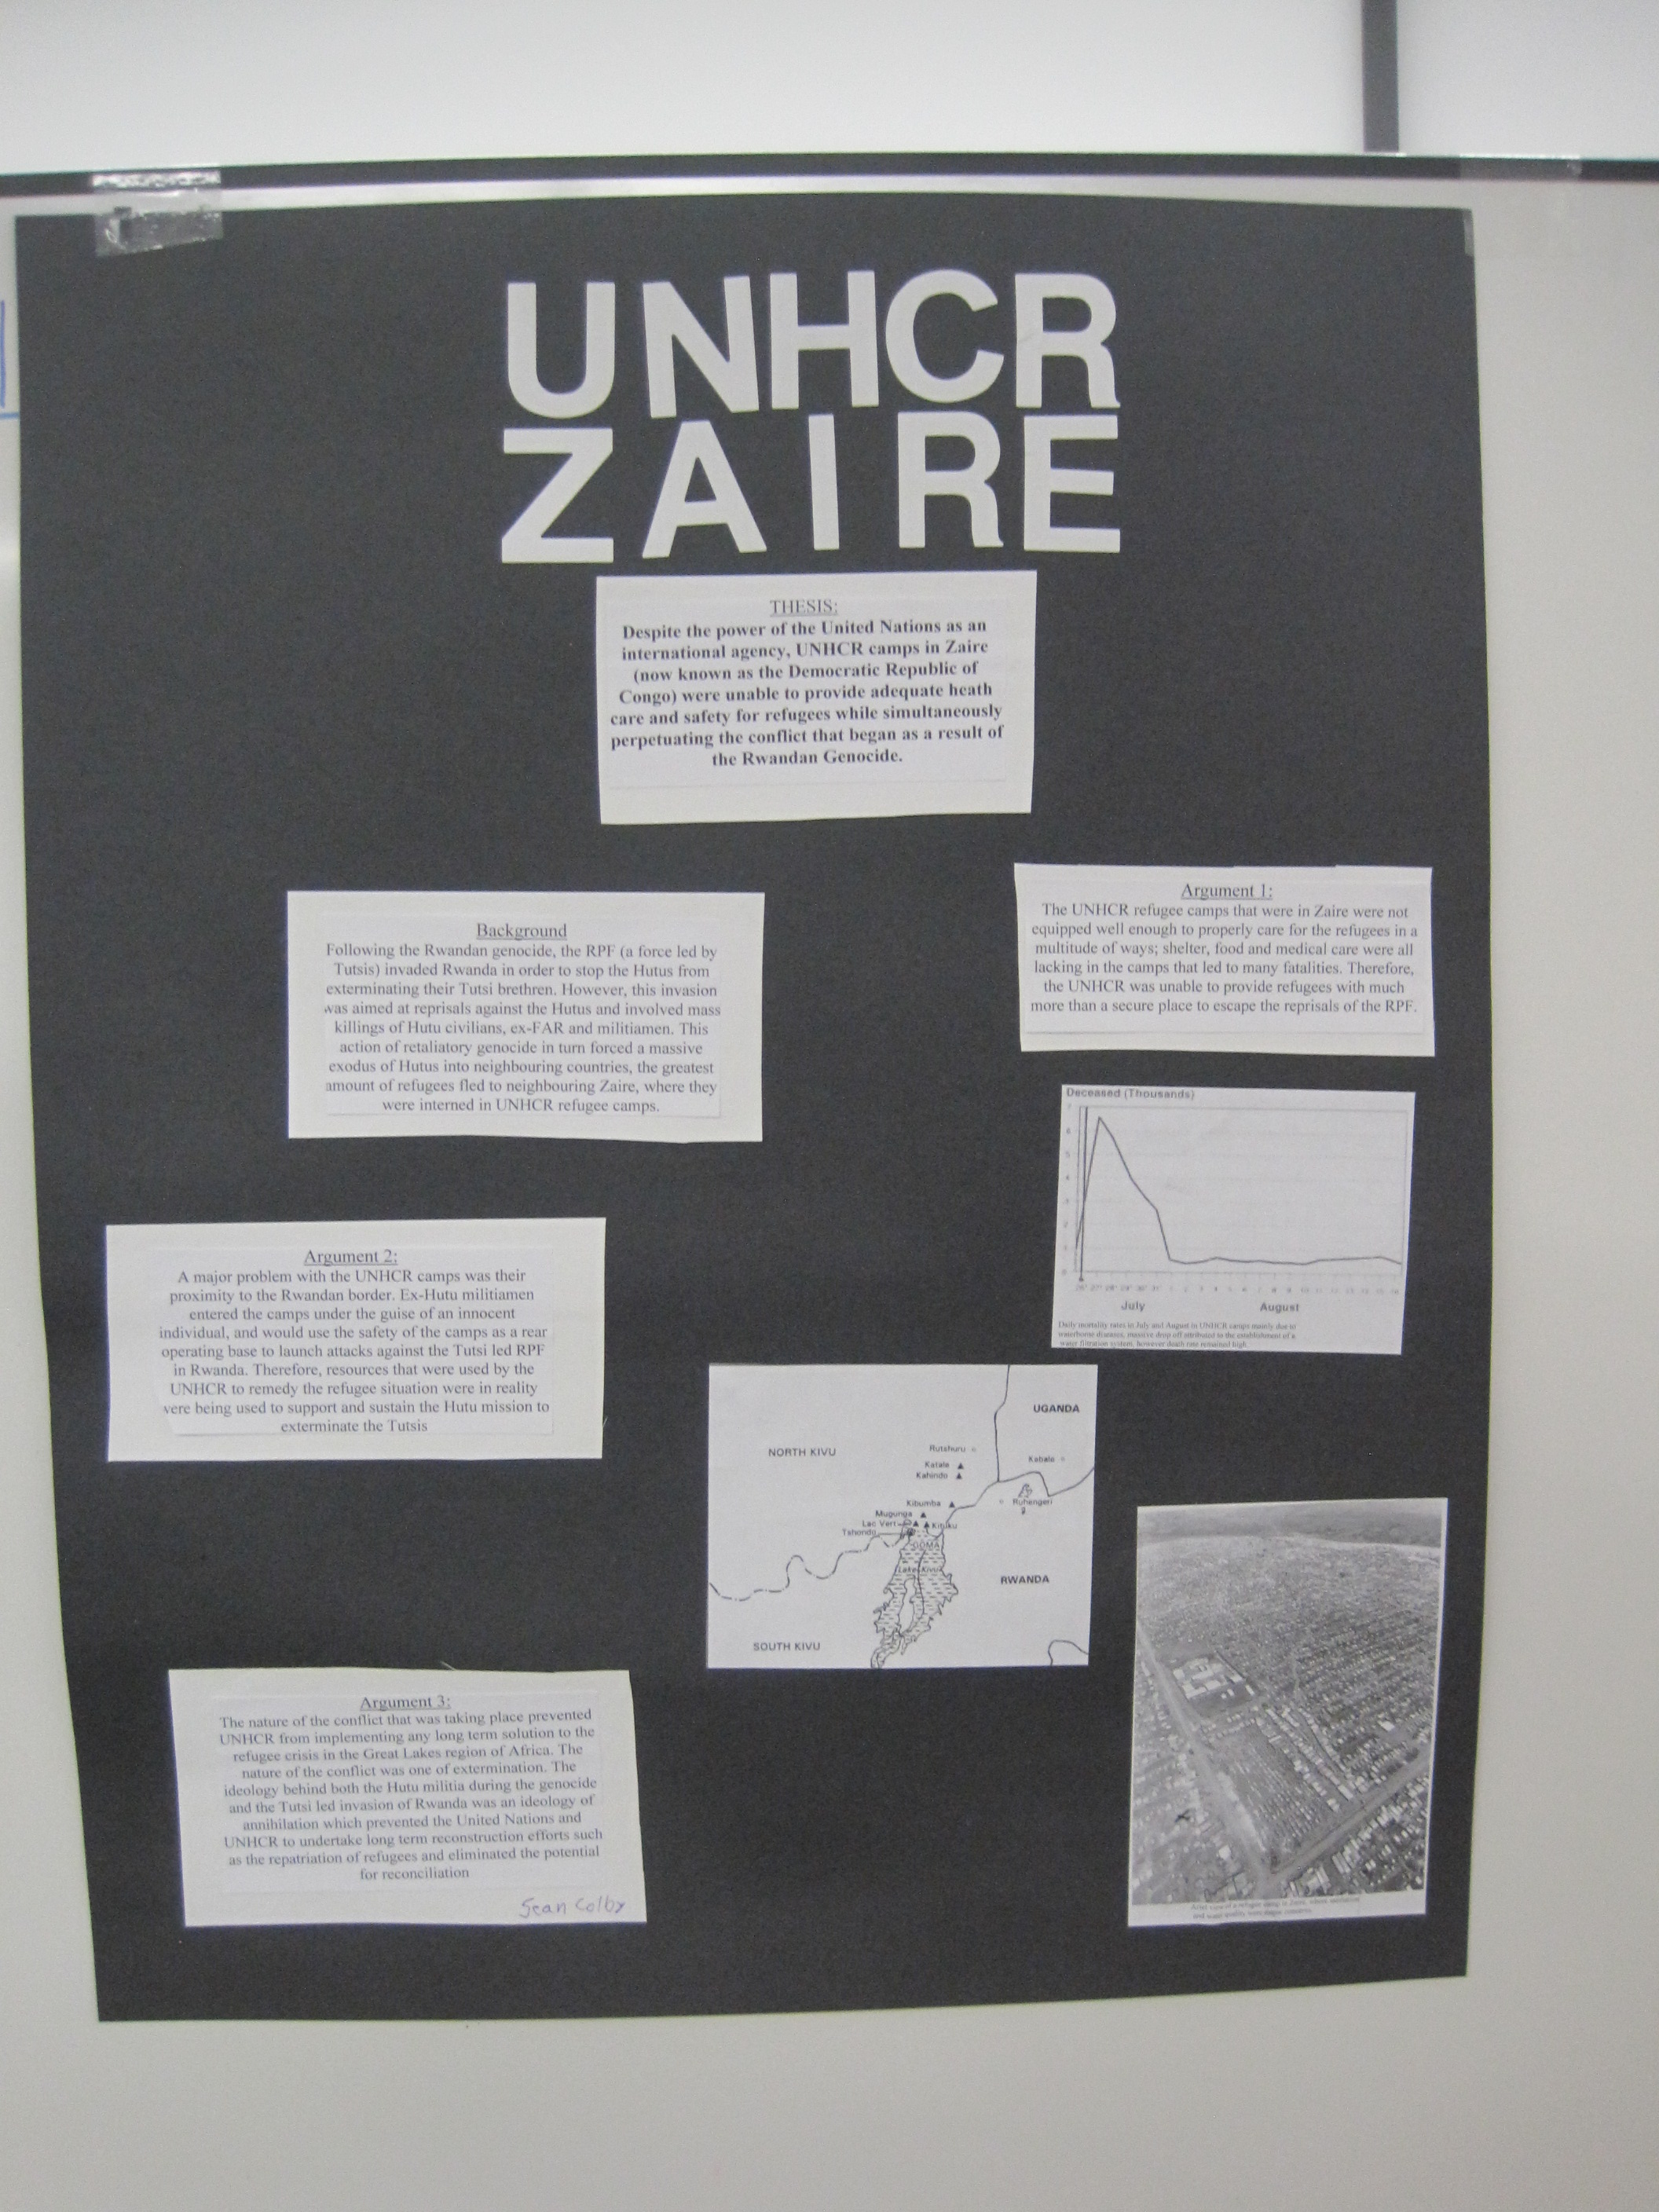 The UNHCR inZaire